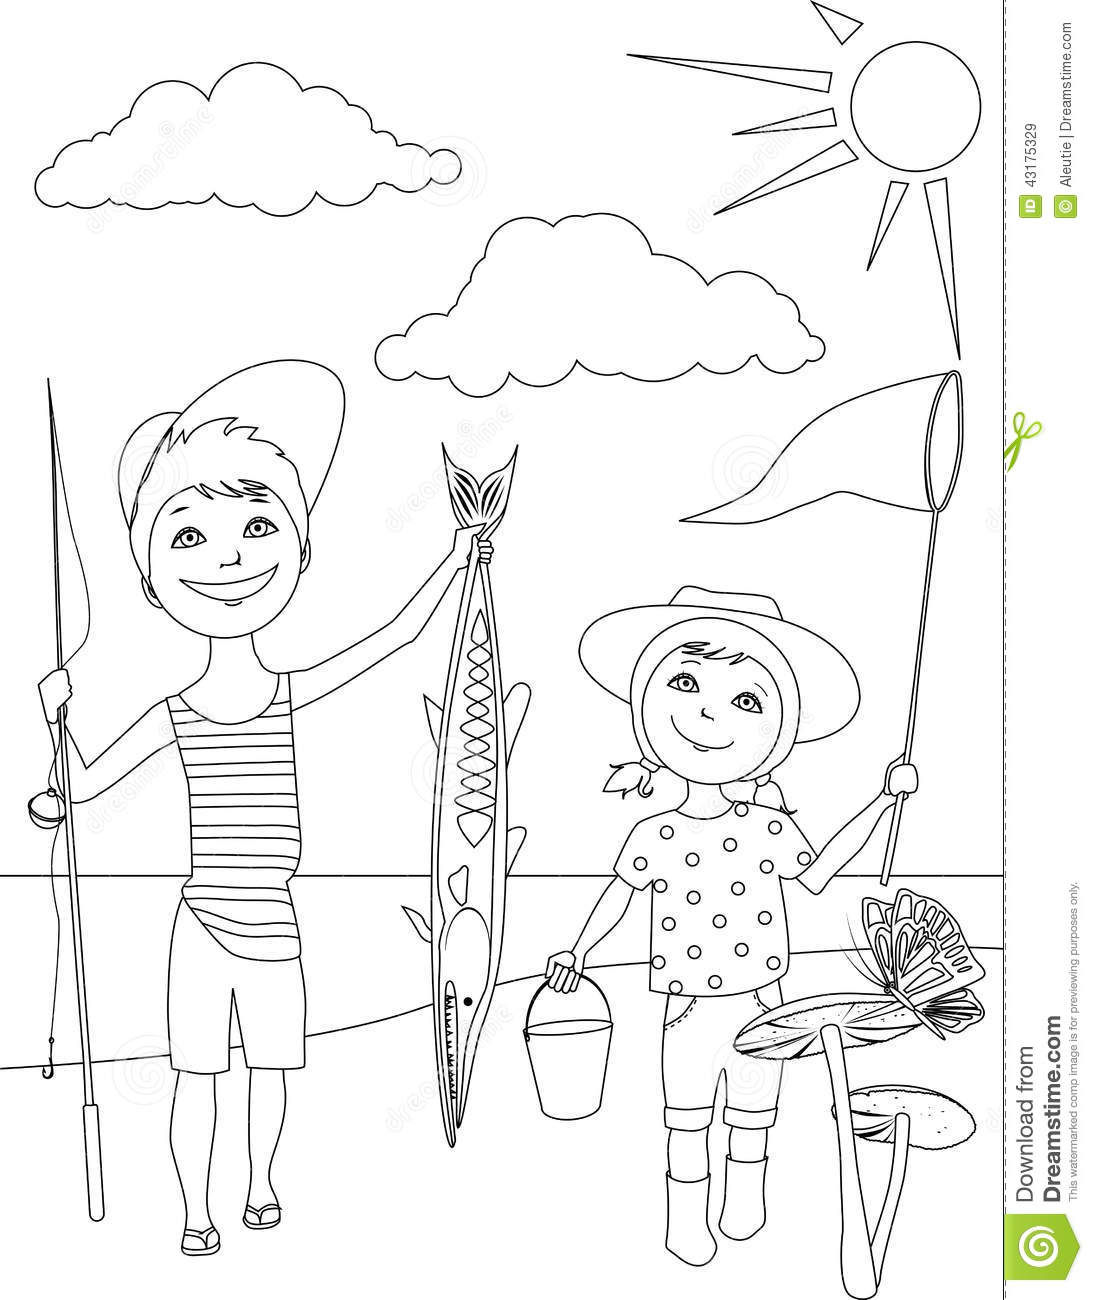 summer activities for kids coloring page stock vector image